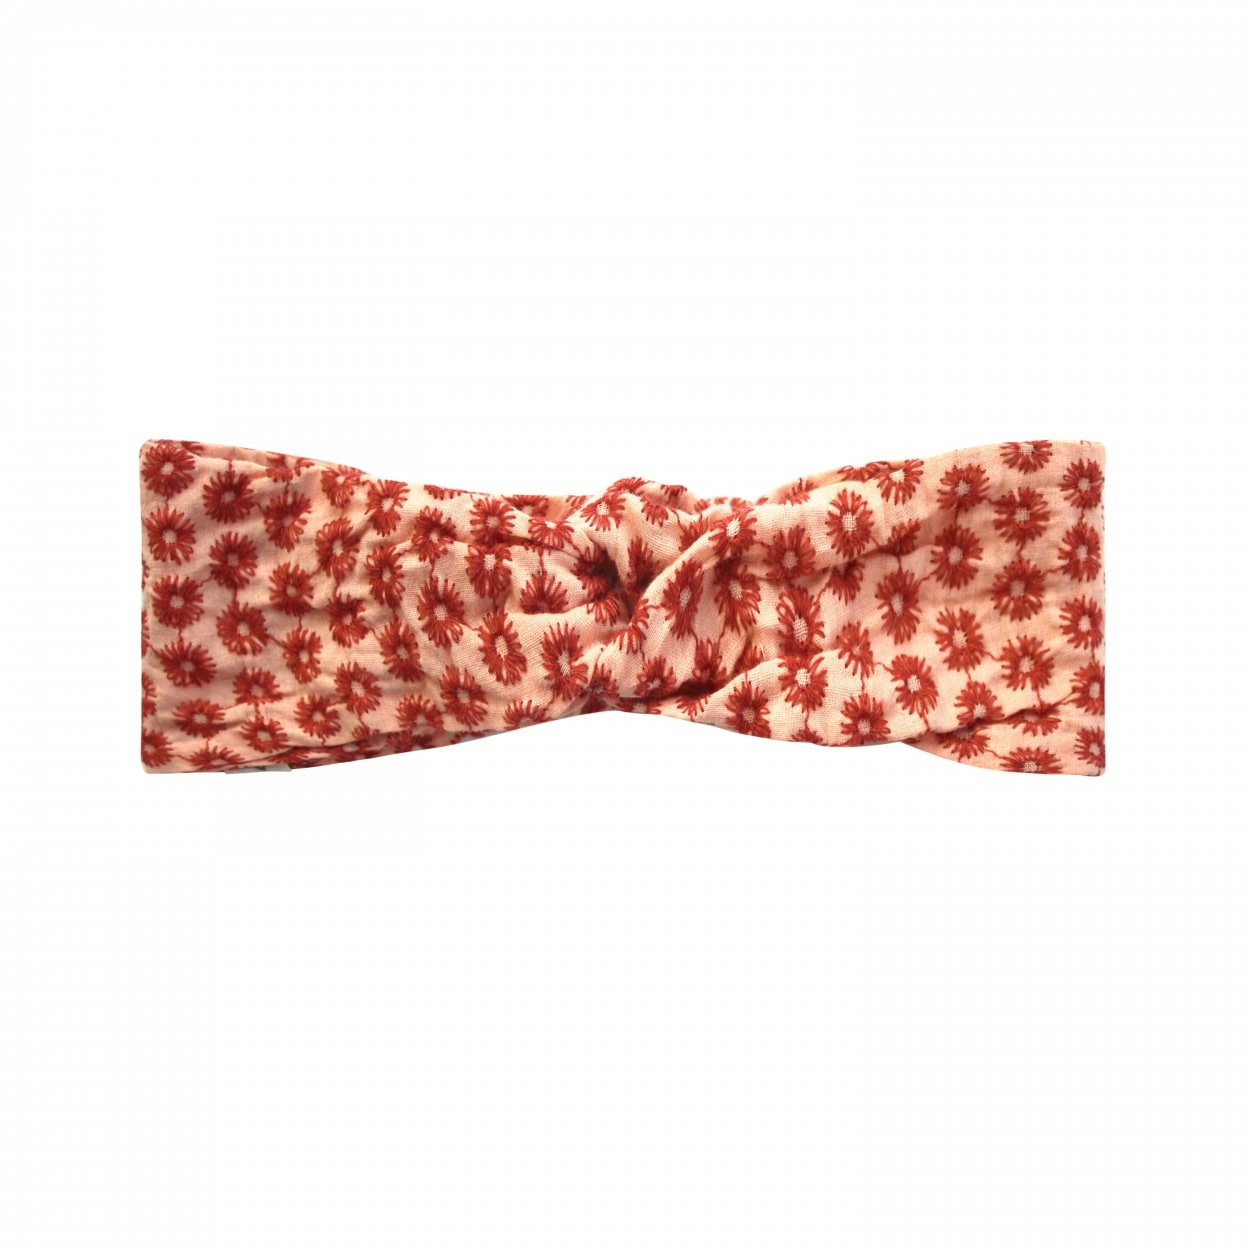 Your Wishes Broderie Terra| Twisted headband